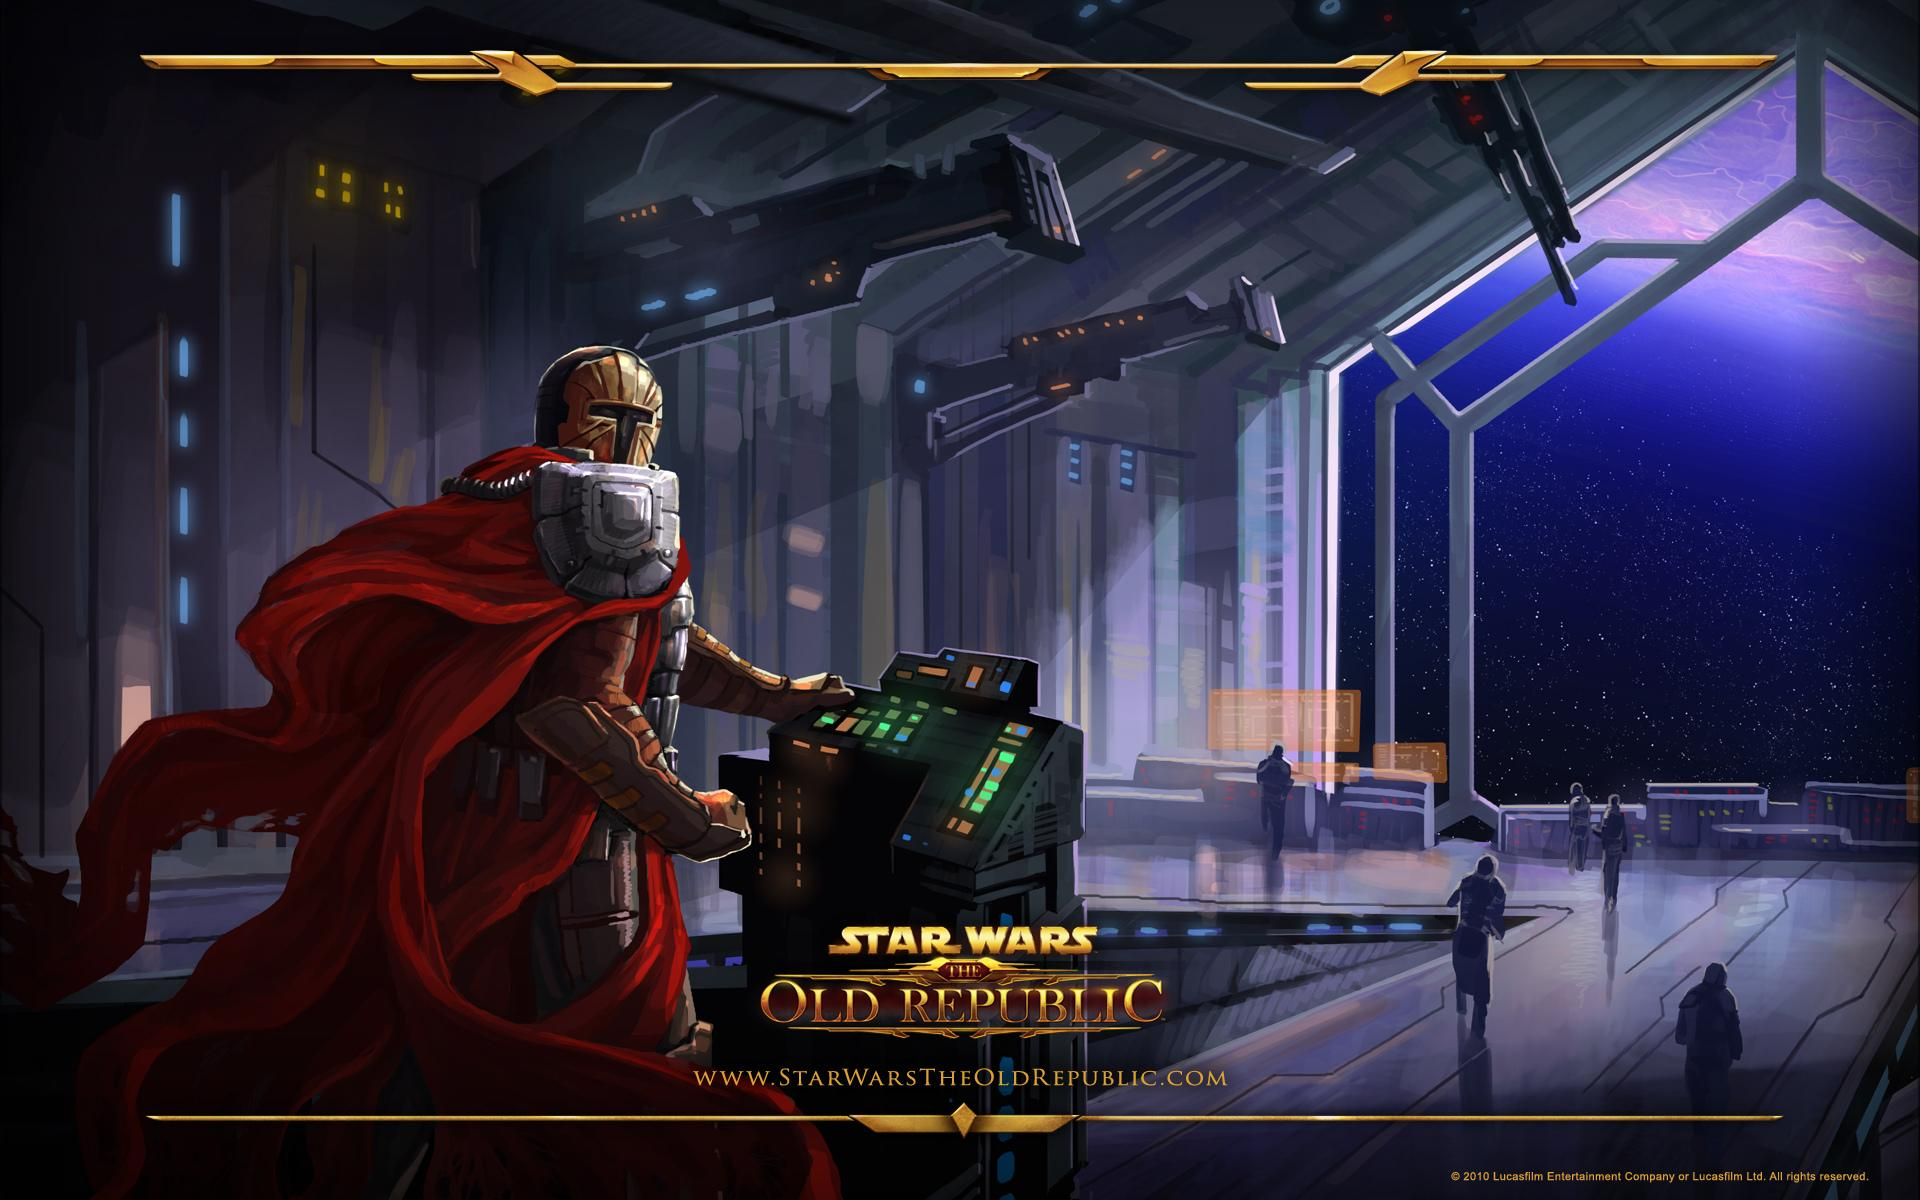 Star Wars The Old Republic Wallpaper HD Download - photo#48